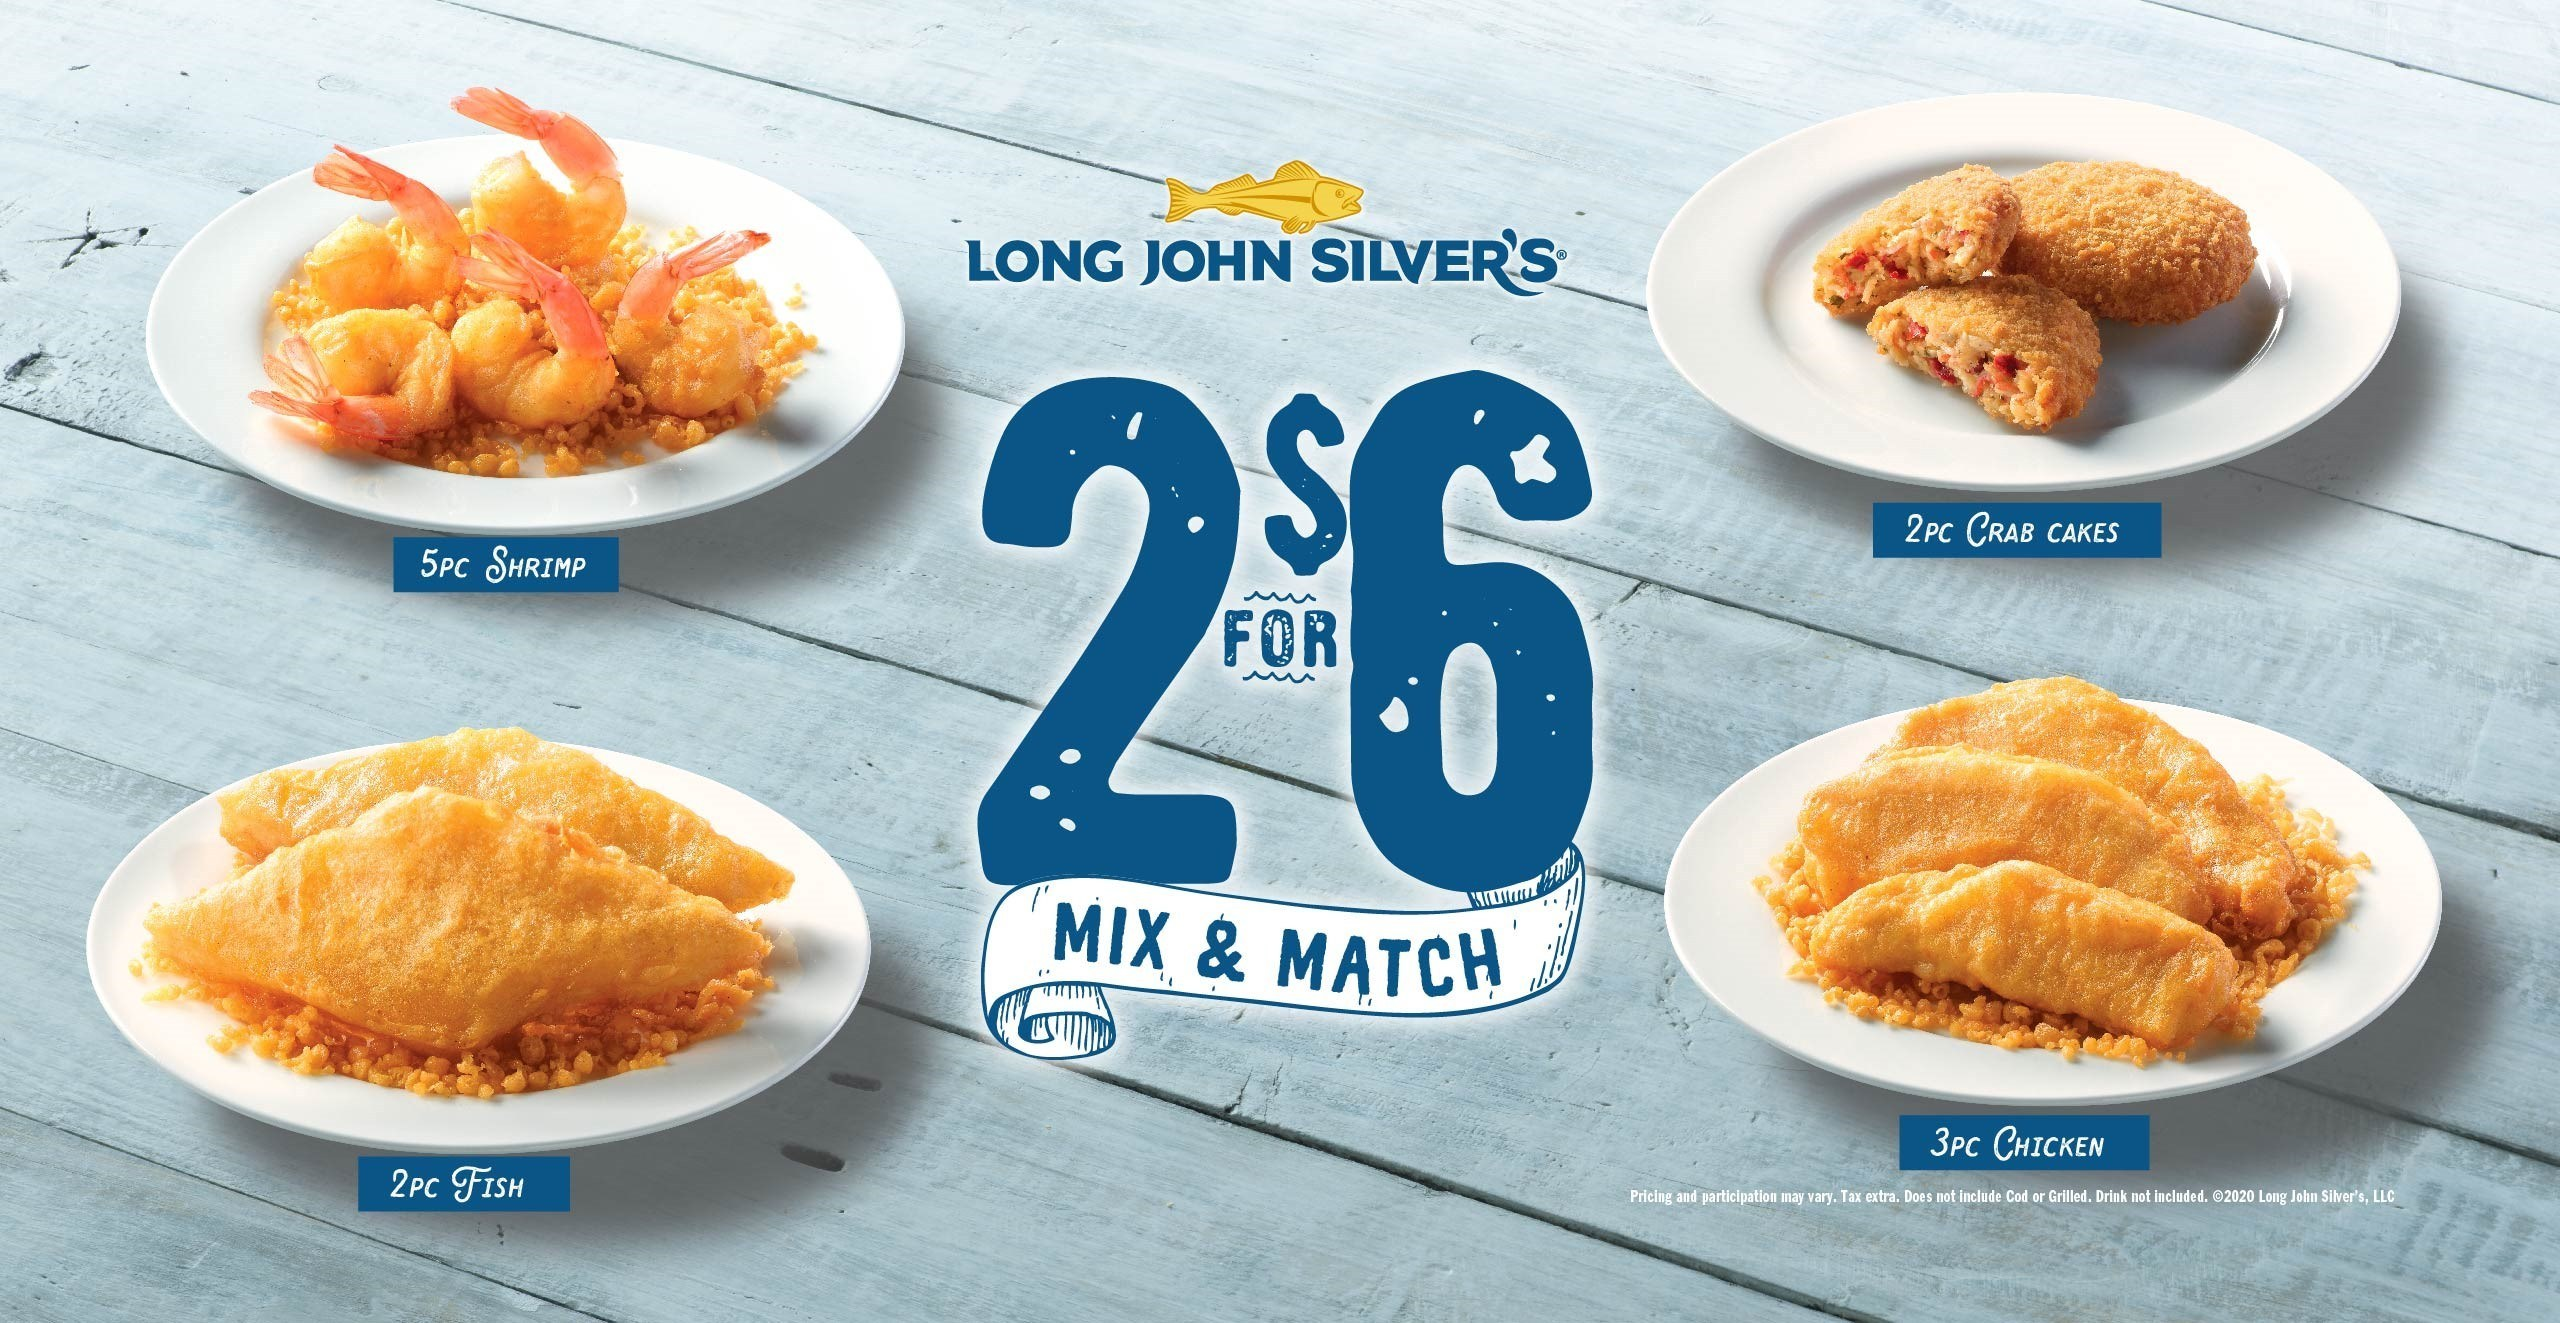 Long John Silver's Announces Lenten Season Specials